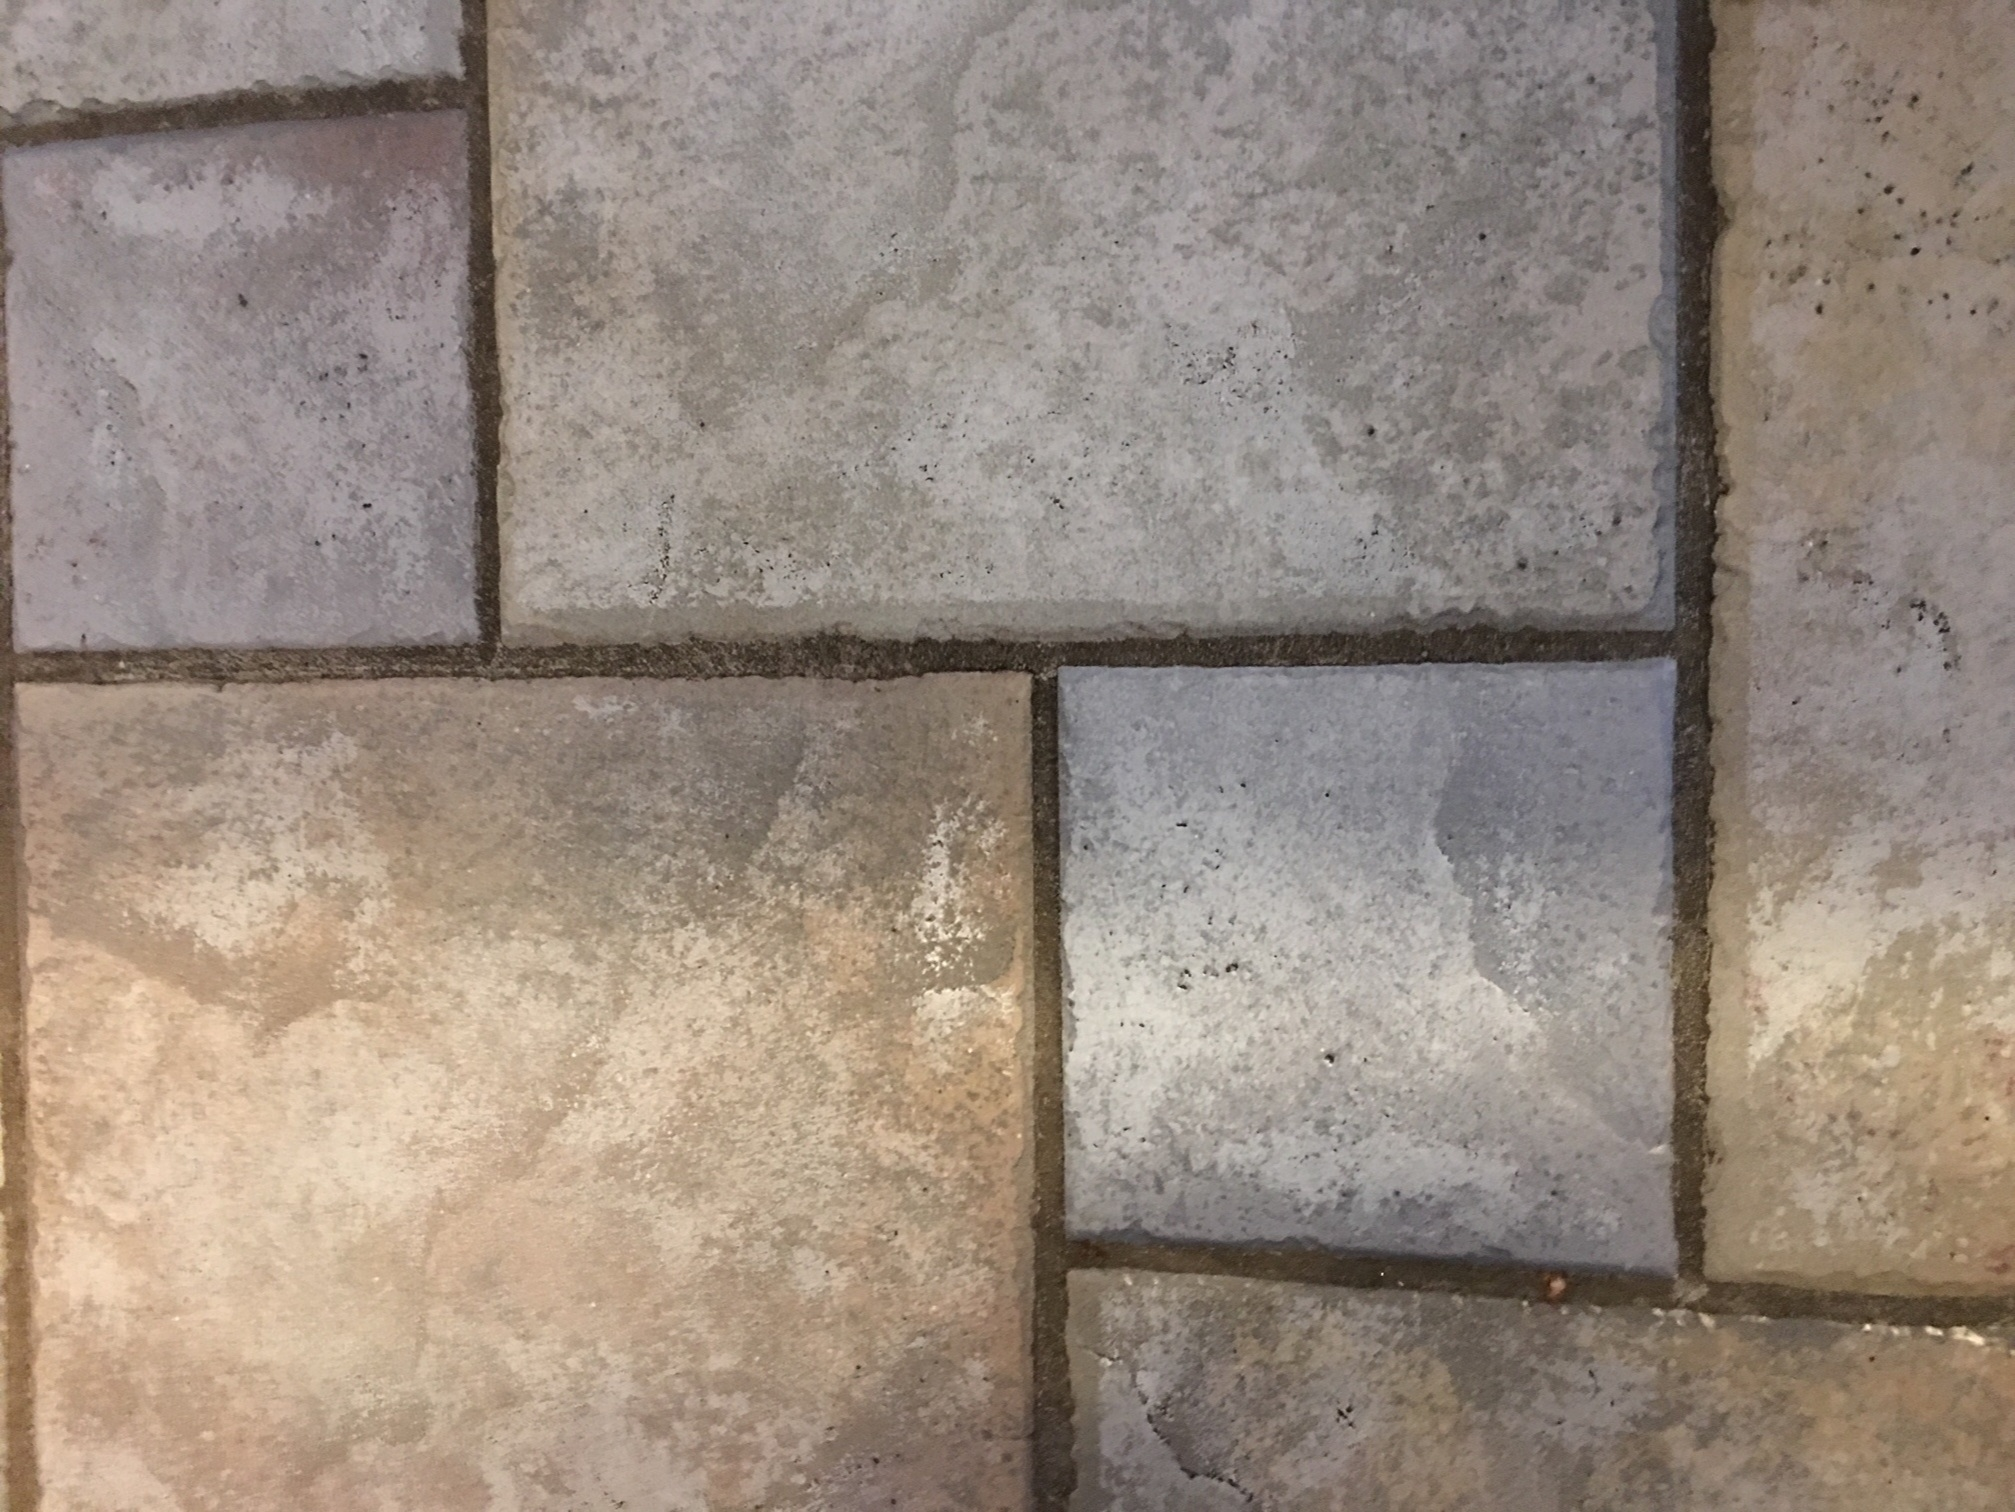 Before Vapor Steam Cleaning… - Does your look worn, dirty, and dull? We can help! Our vapor steam cleaning services restore tile to a bright and clean finish!